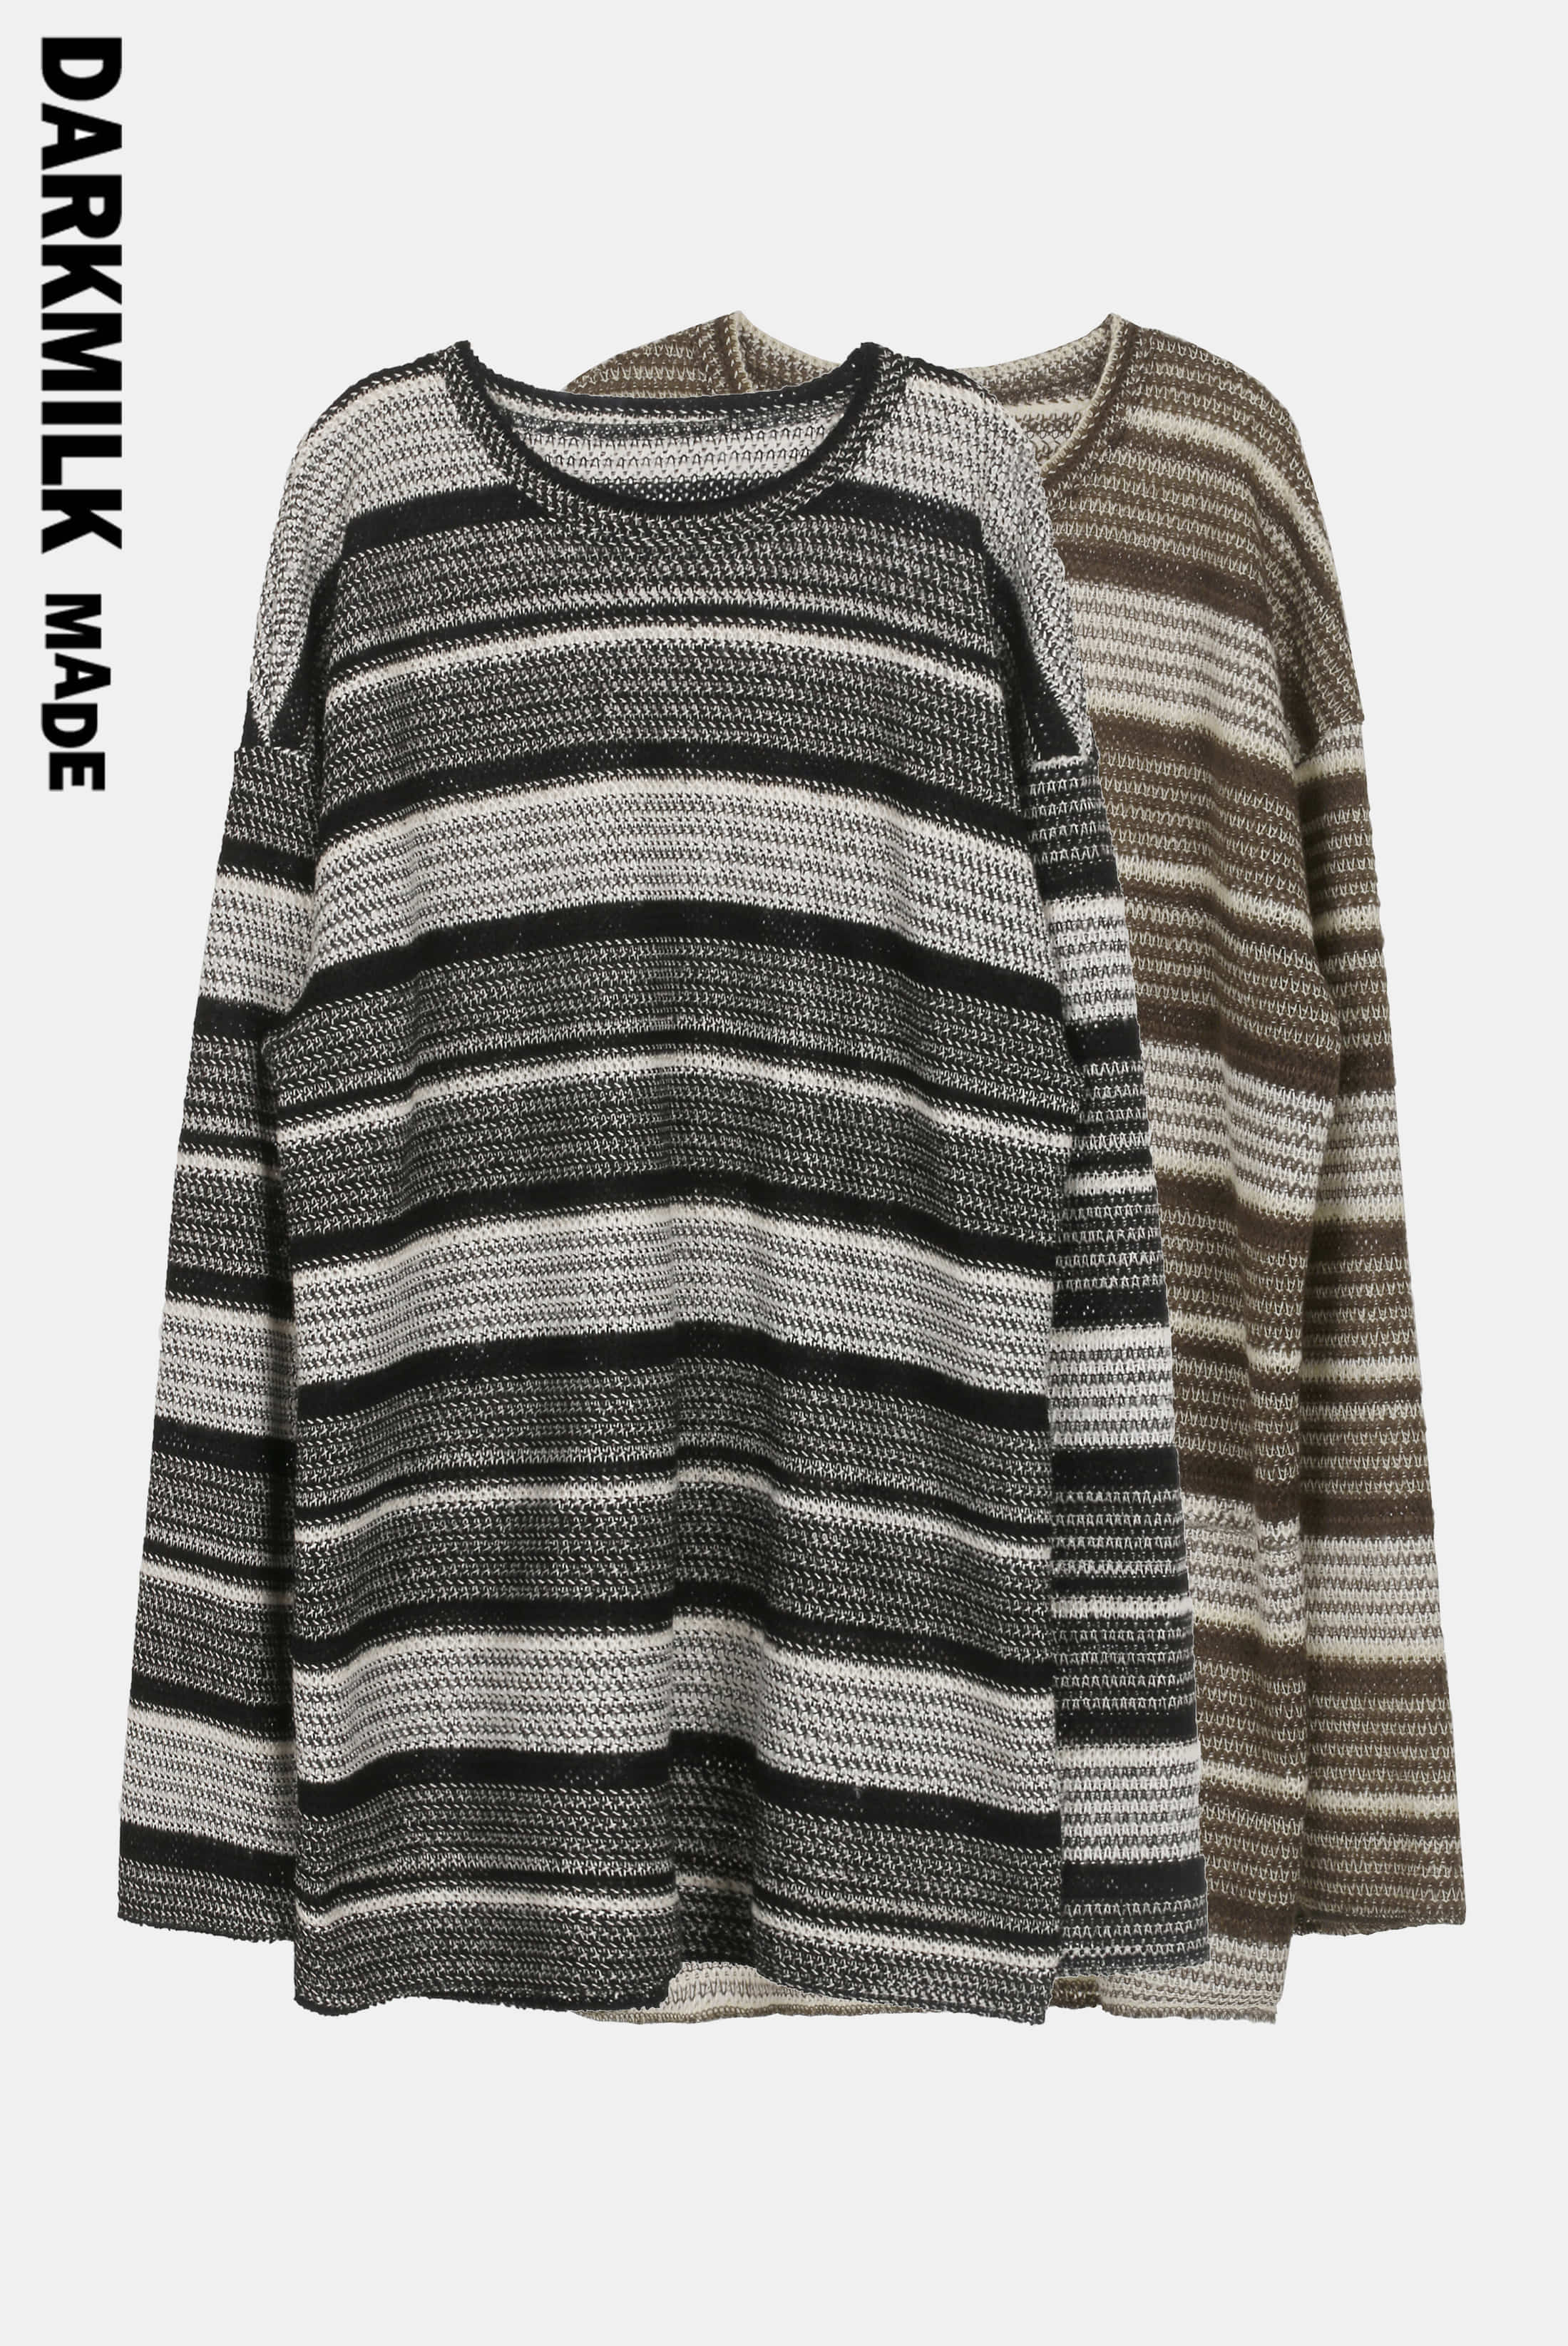 [MADE] Over_Long Unbalance_Stripe Knitwear